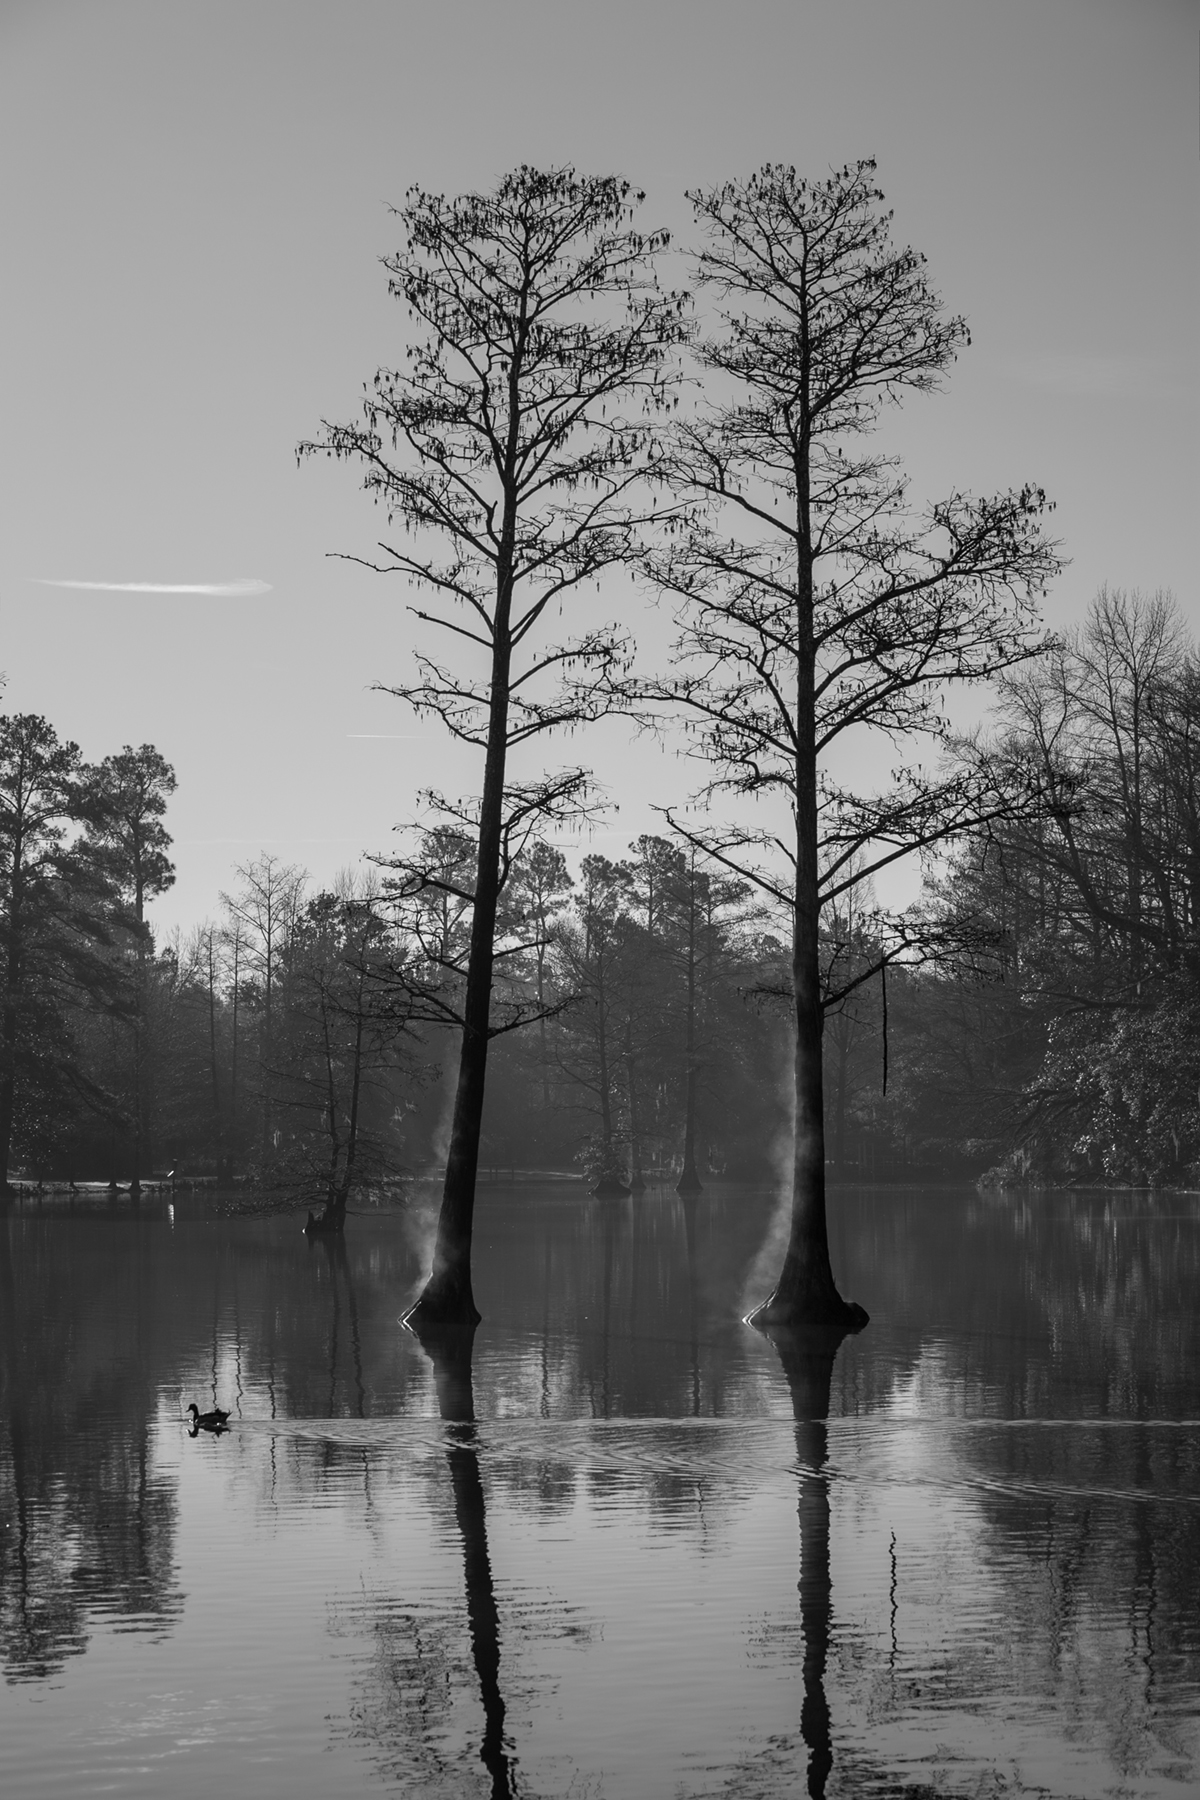 Two cypress trees growing out of a lake just to the center of the image; more trees around the lake are seen in the background.